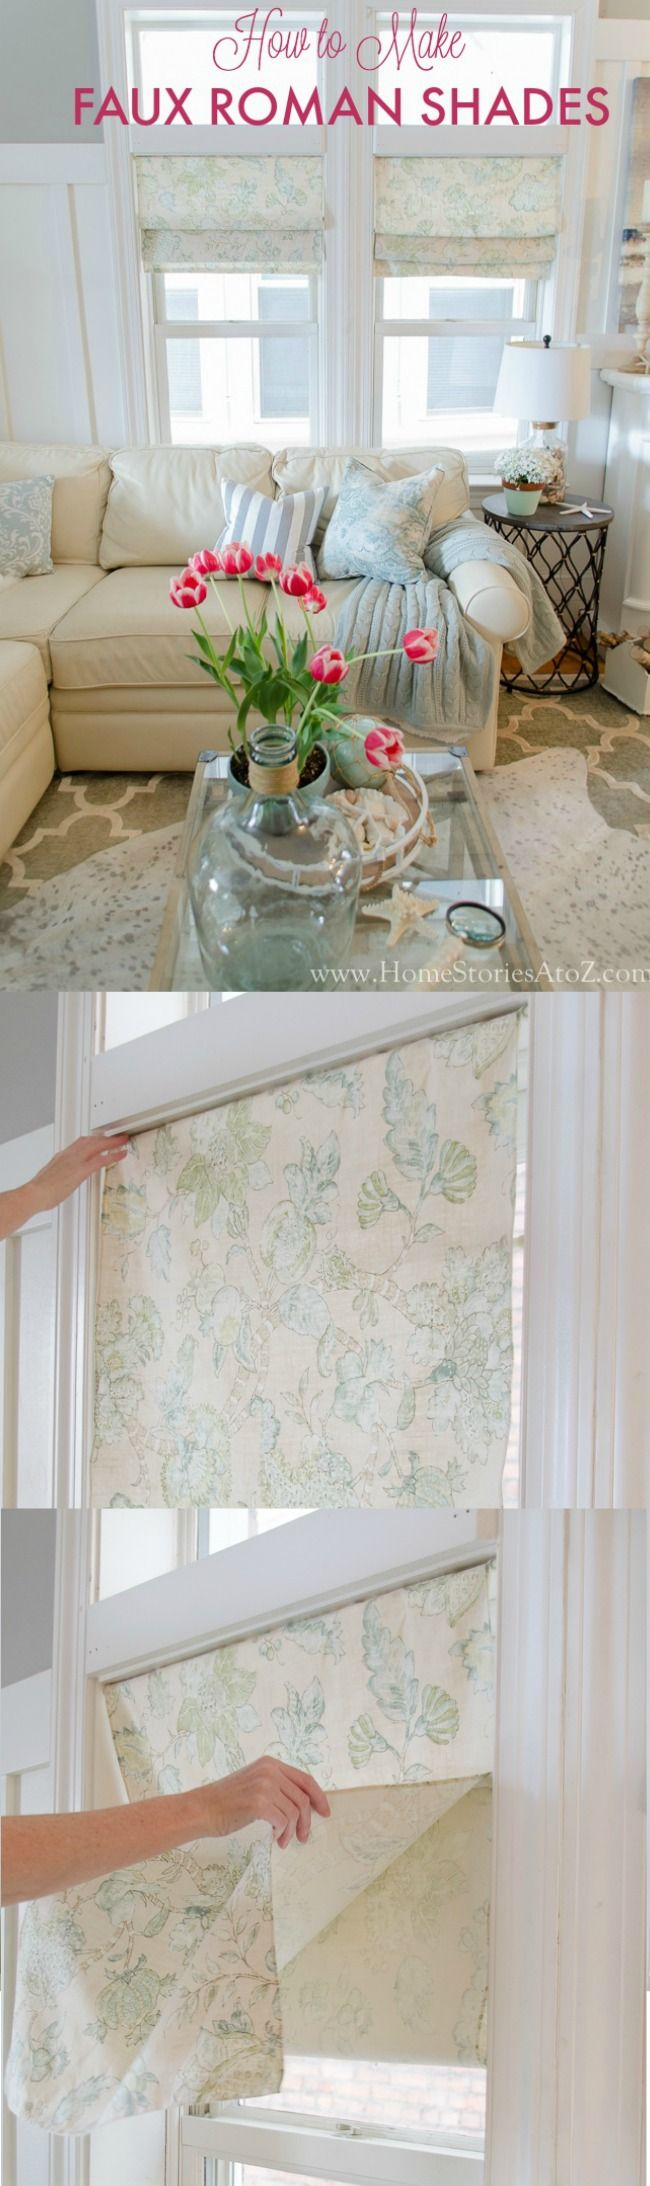 best feasible sewing projects images on pinterest craft craft